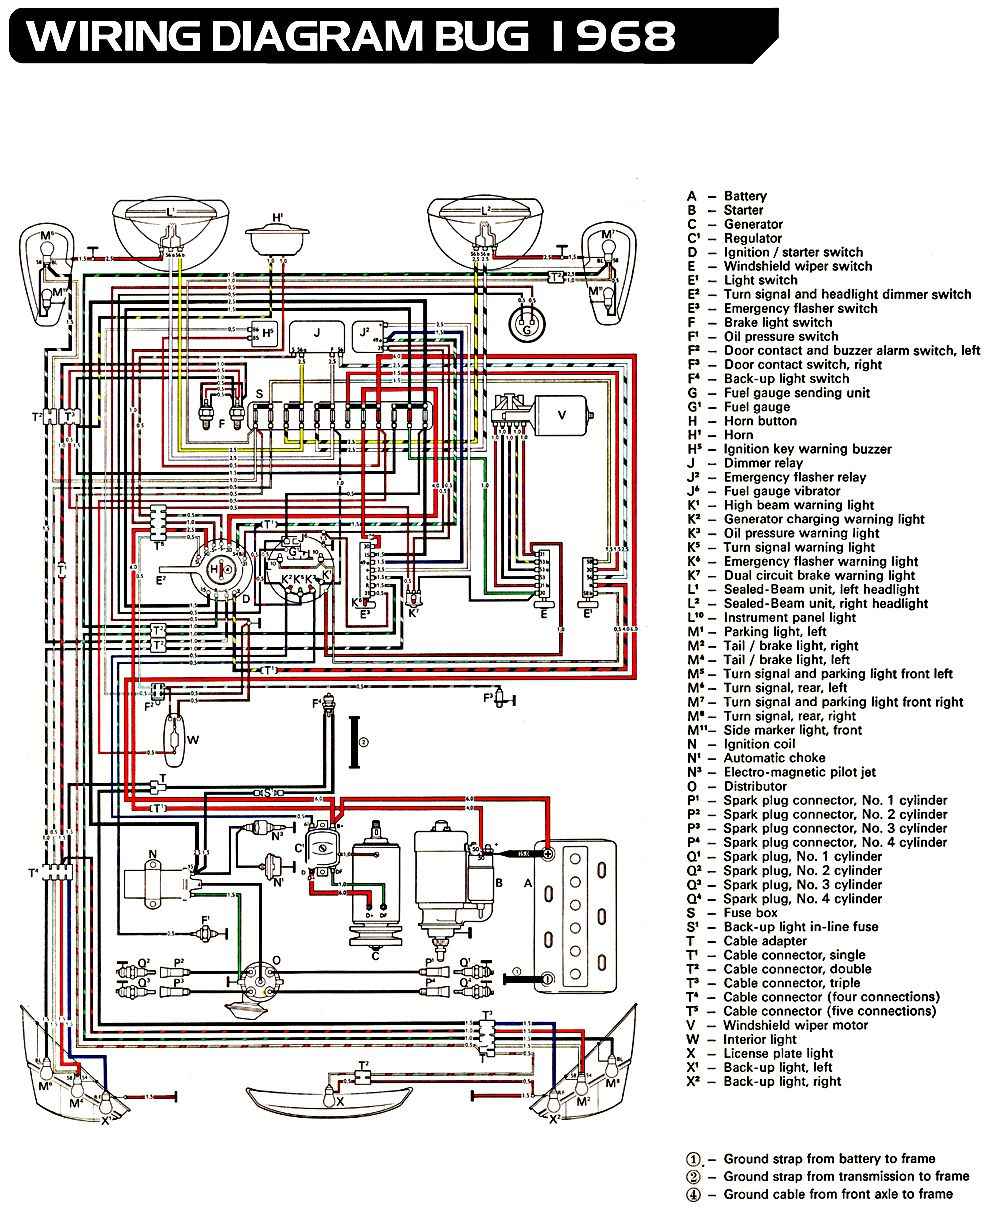 3a1908112d3826270ed5e3be362292bf vw bug ignition wiring diagram 73 vw wiring diagram free vw bug wiring diagram at eliteediting.co